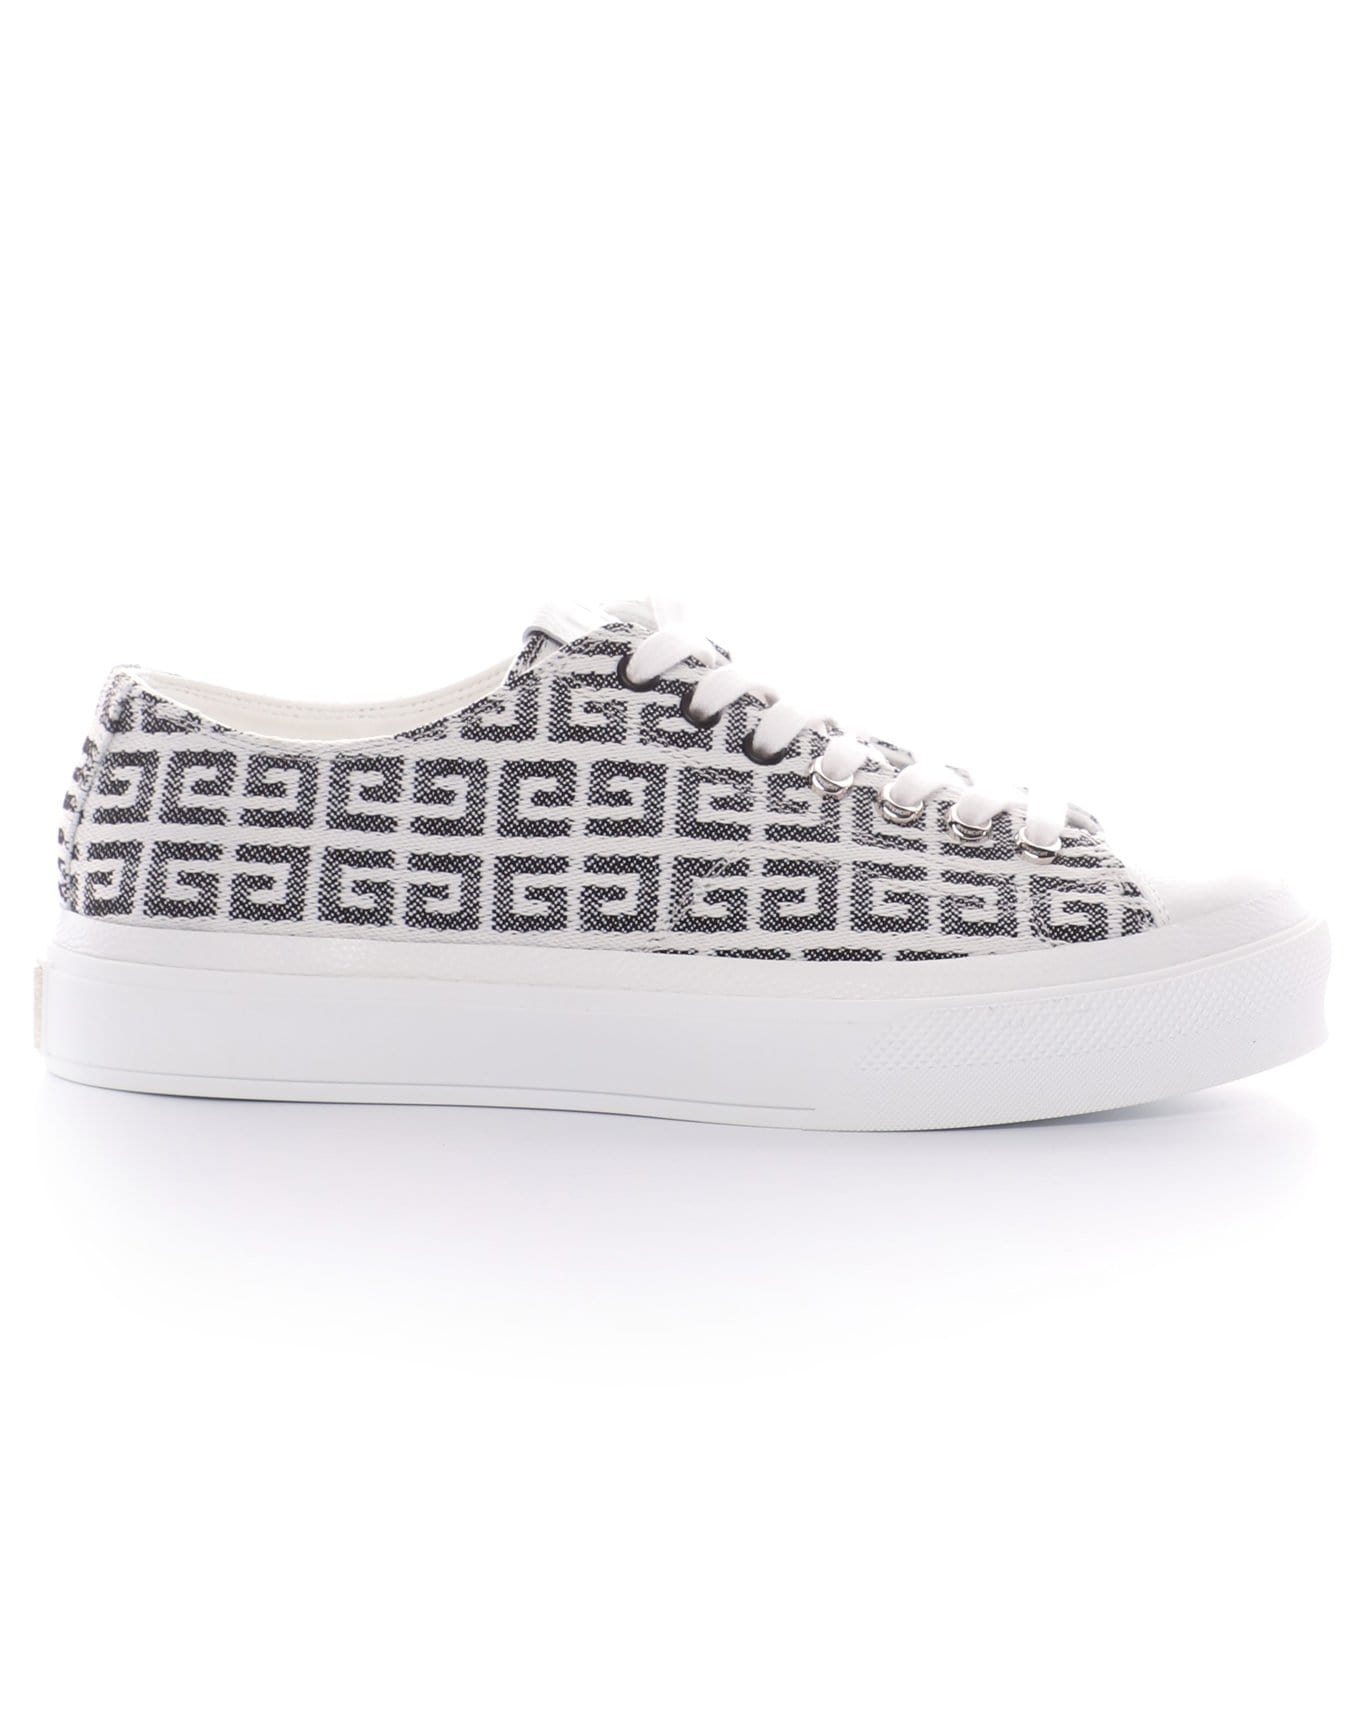 Image of Sneakers City in 4G jacquard